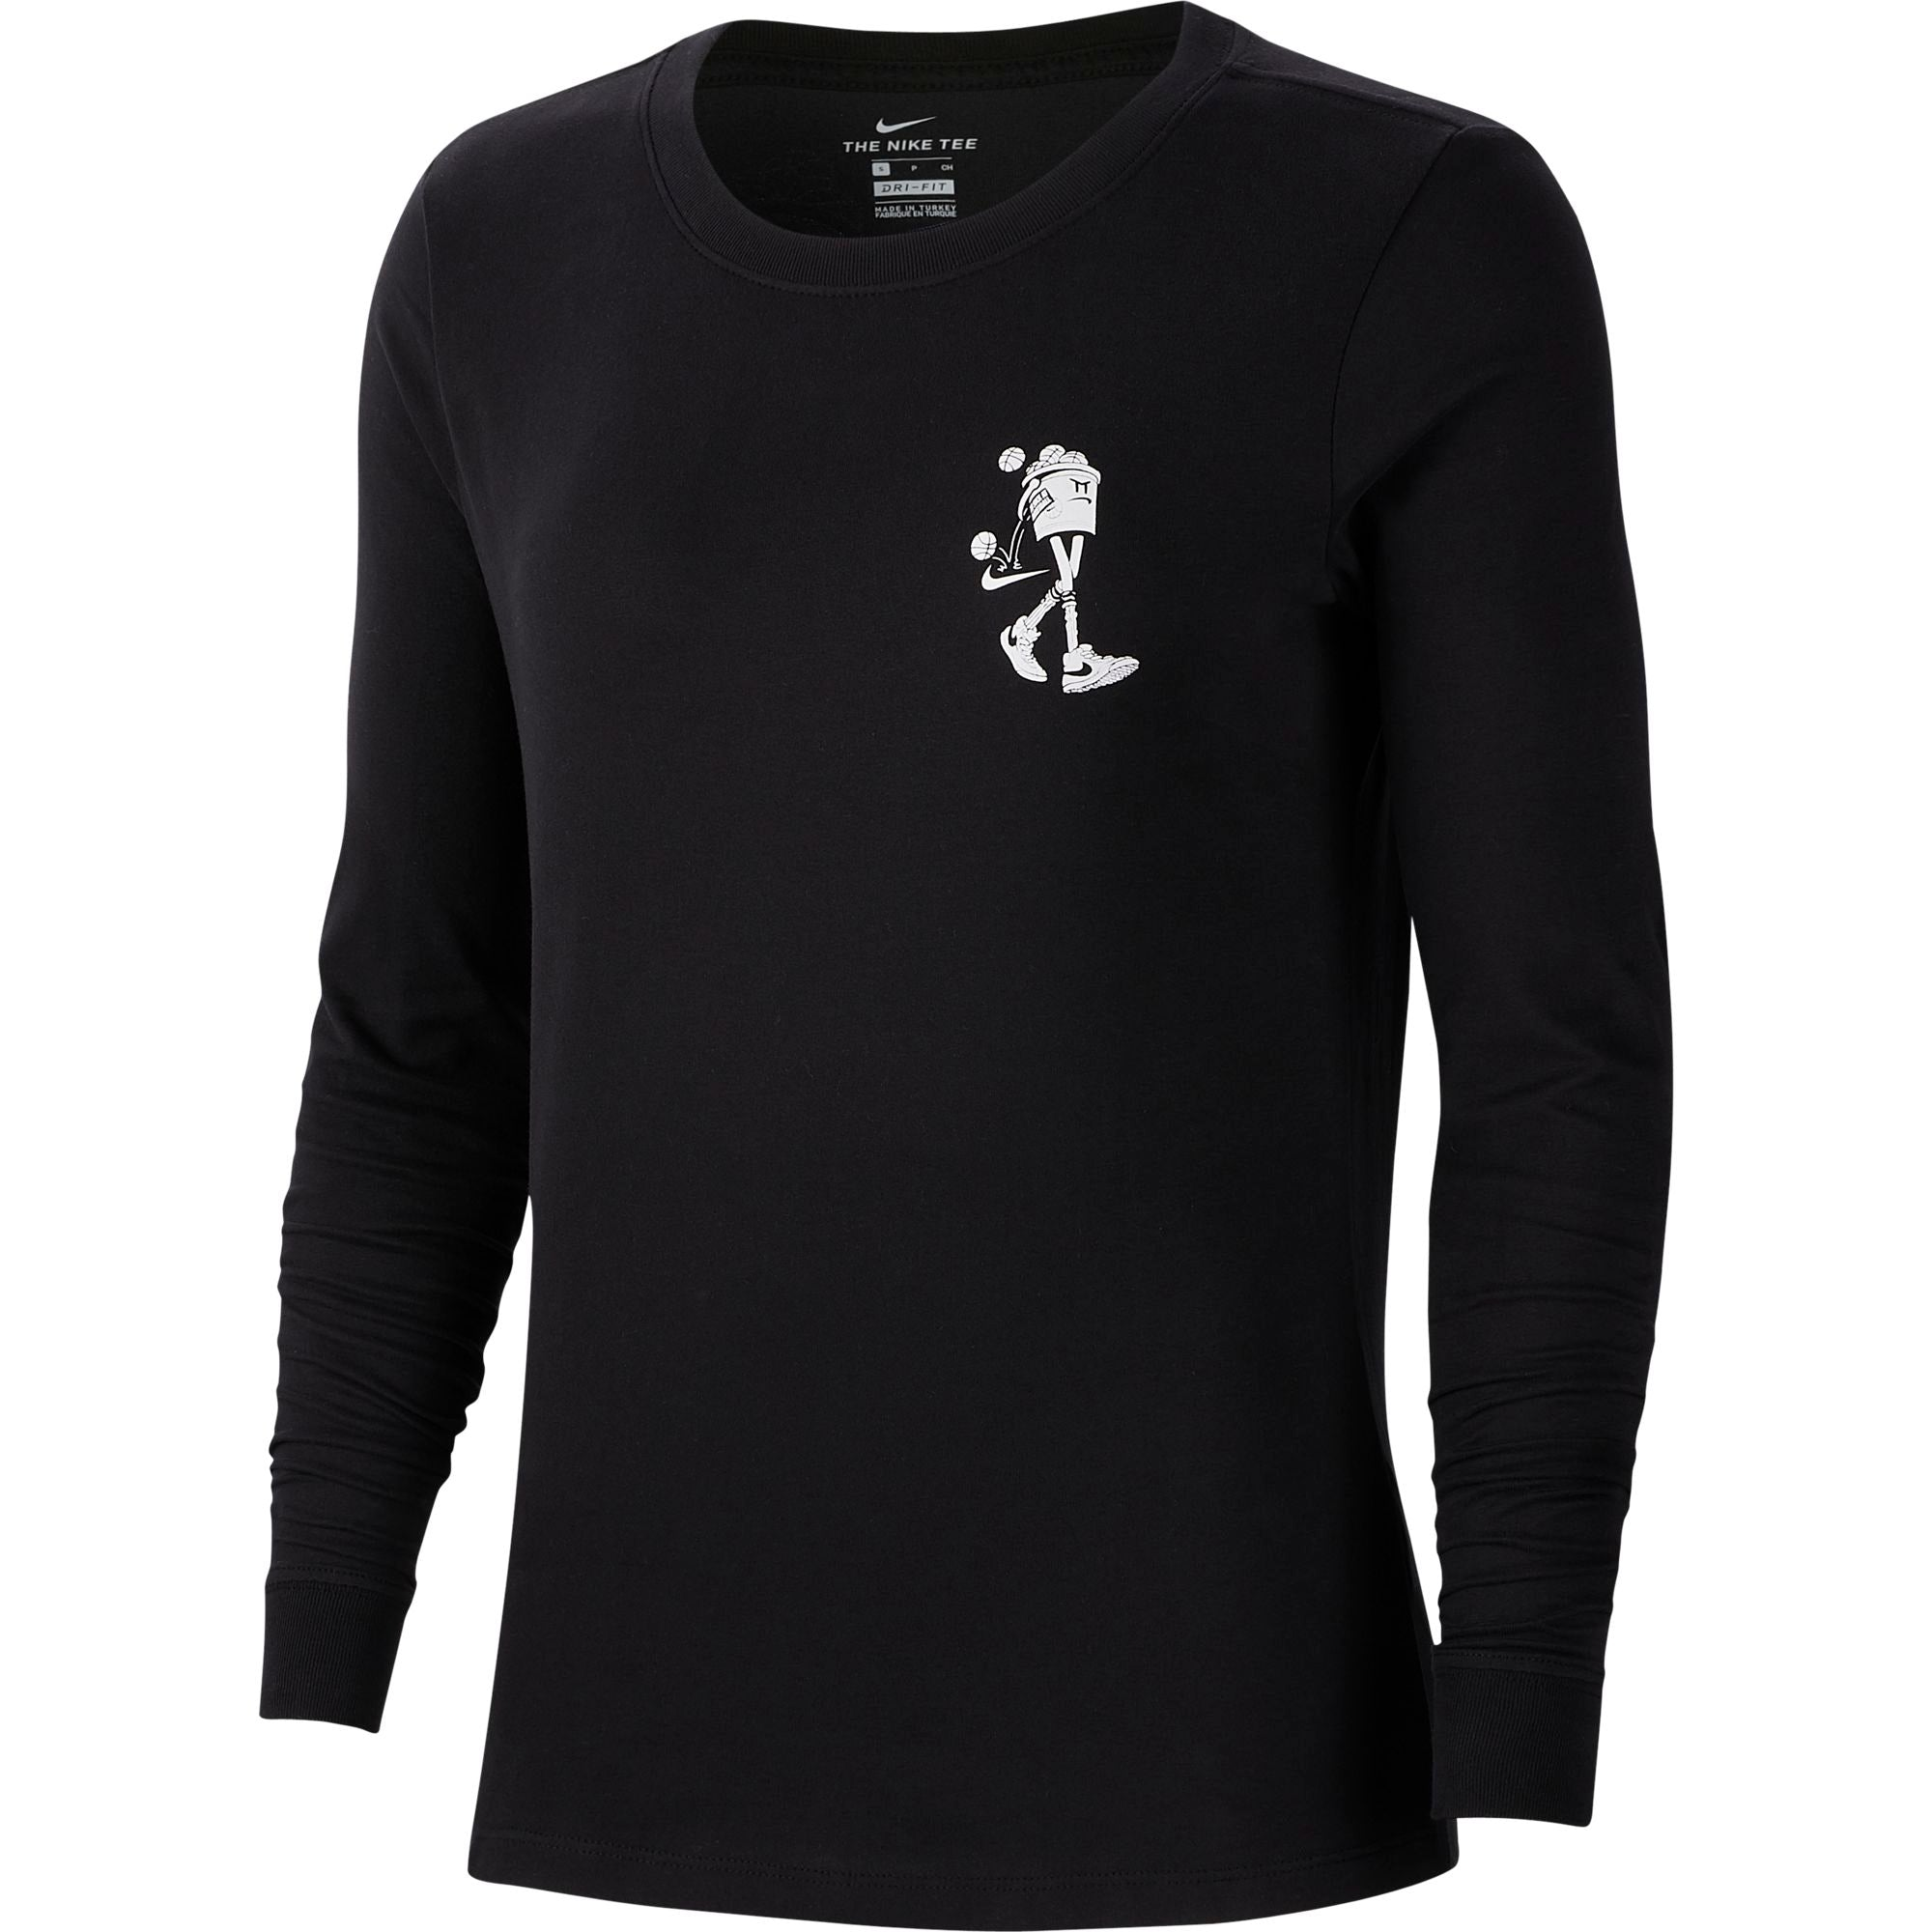 Nike Womens Basketball Dri-fit Long-Sleeved Tee - NK-CD0979-010